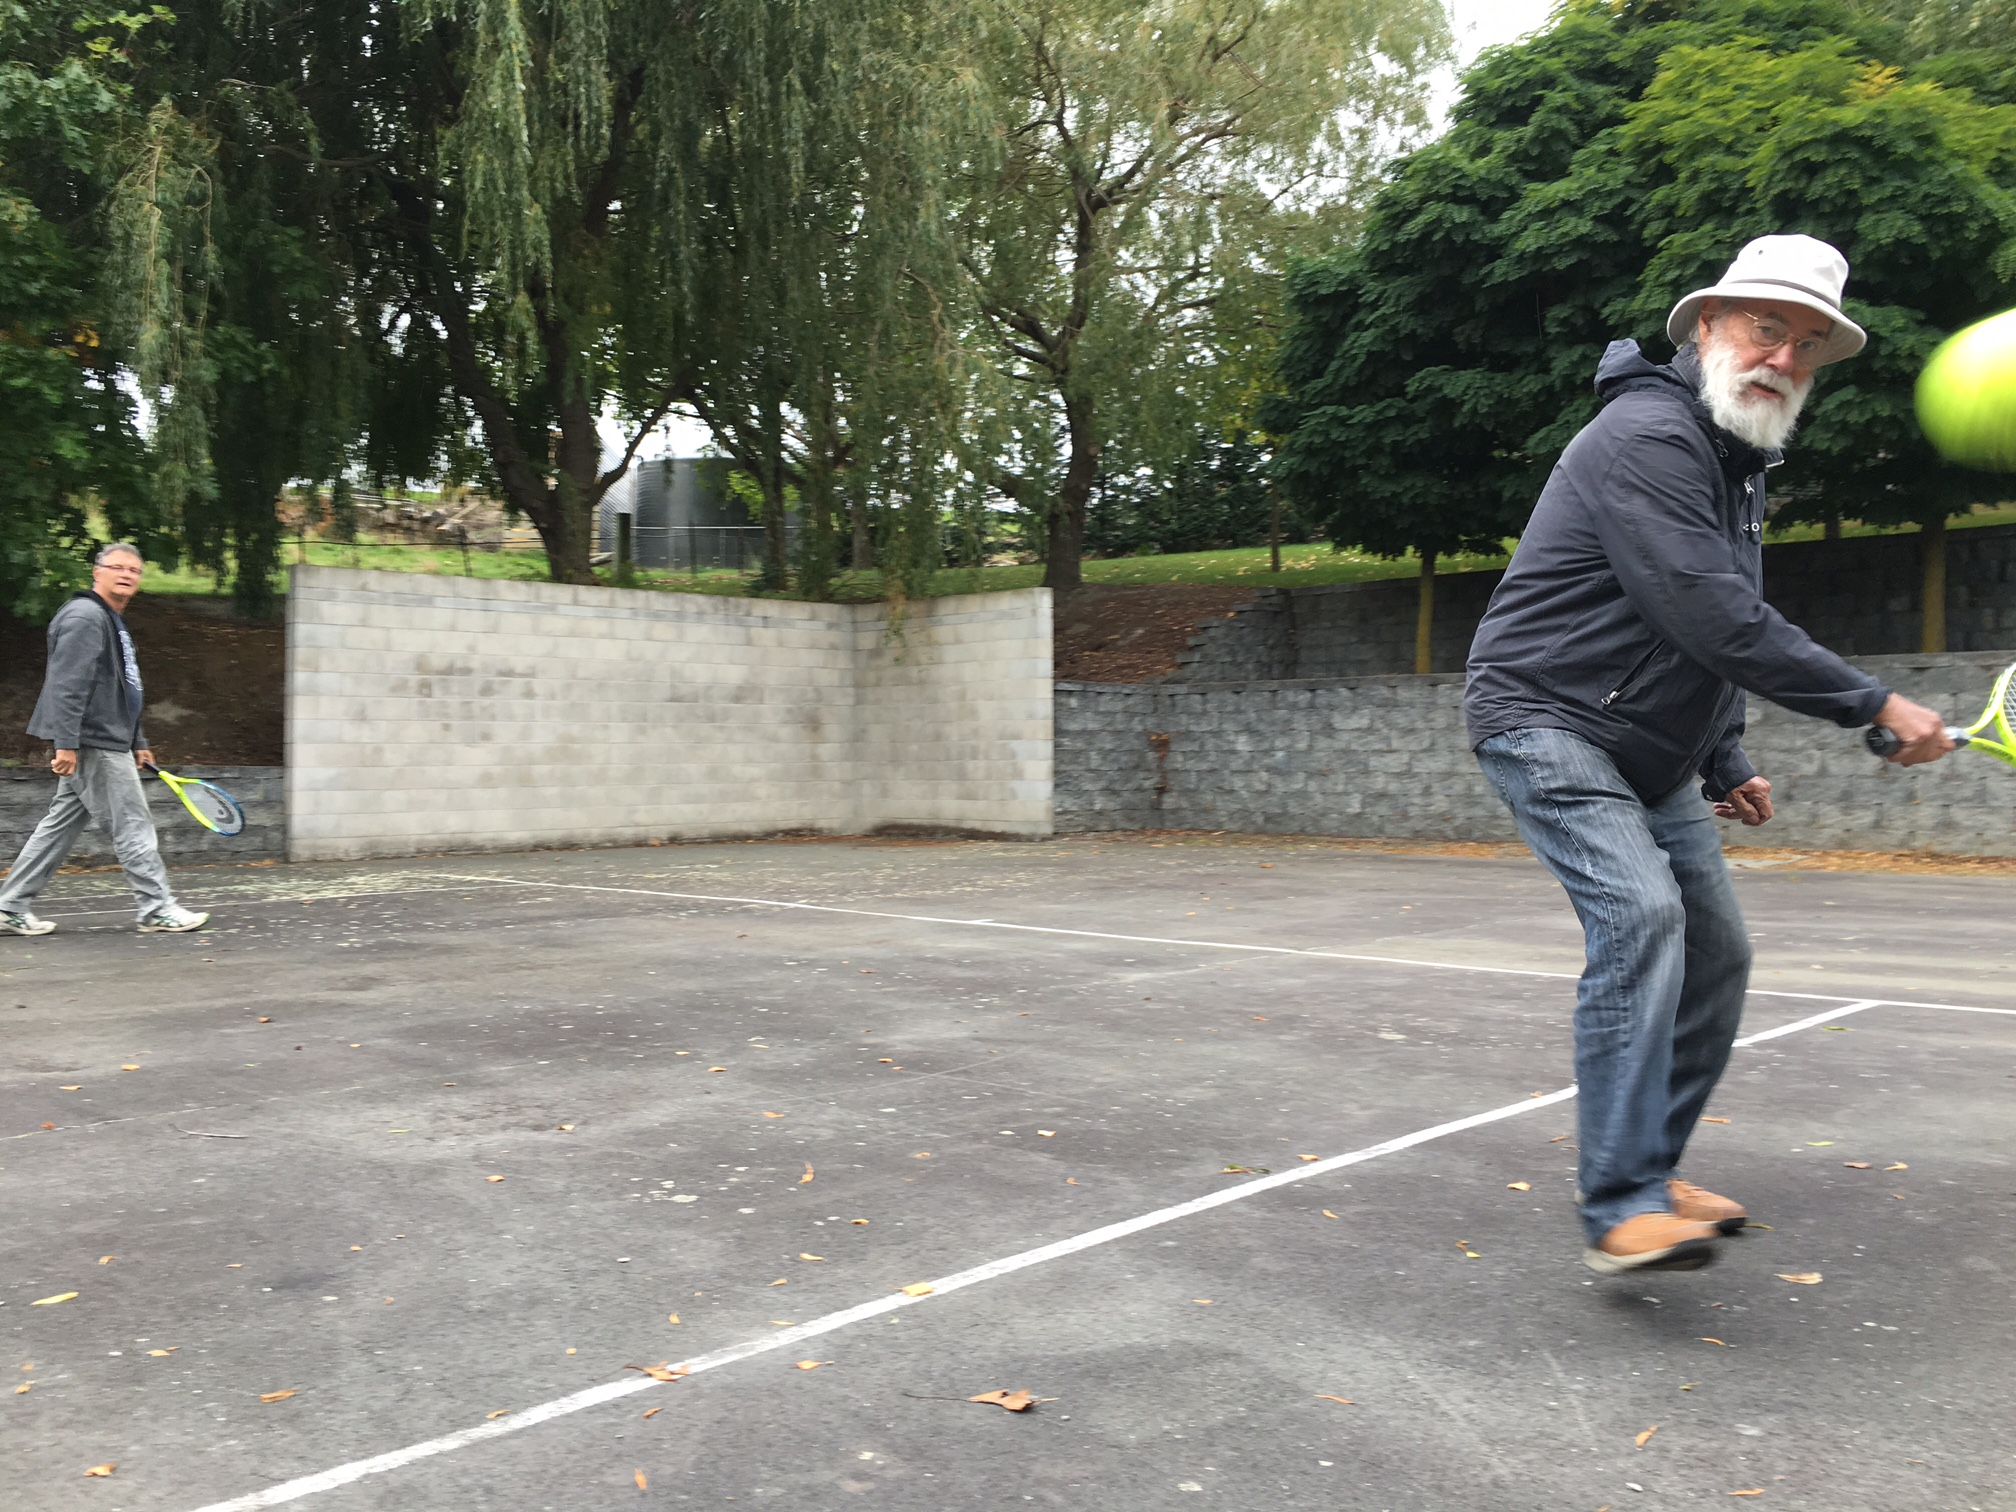 Ron Mcburnie and Kevin Connor on the tennis court at Giverny